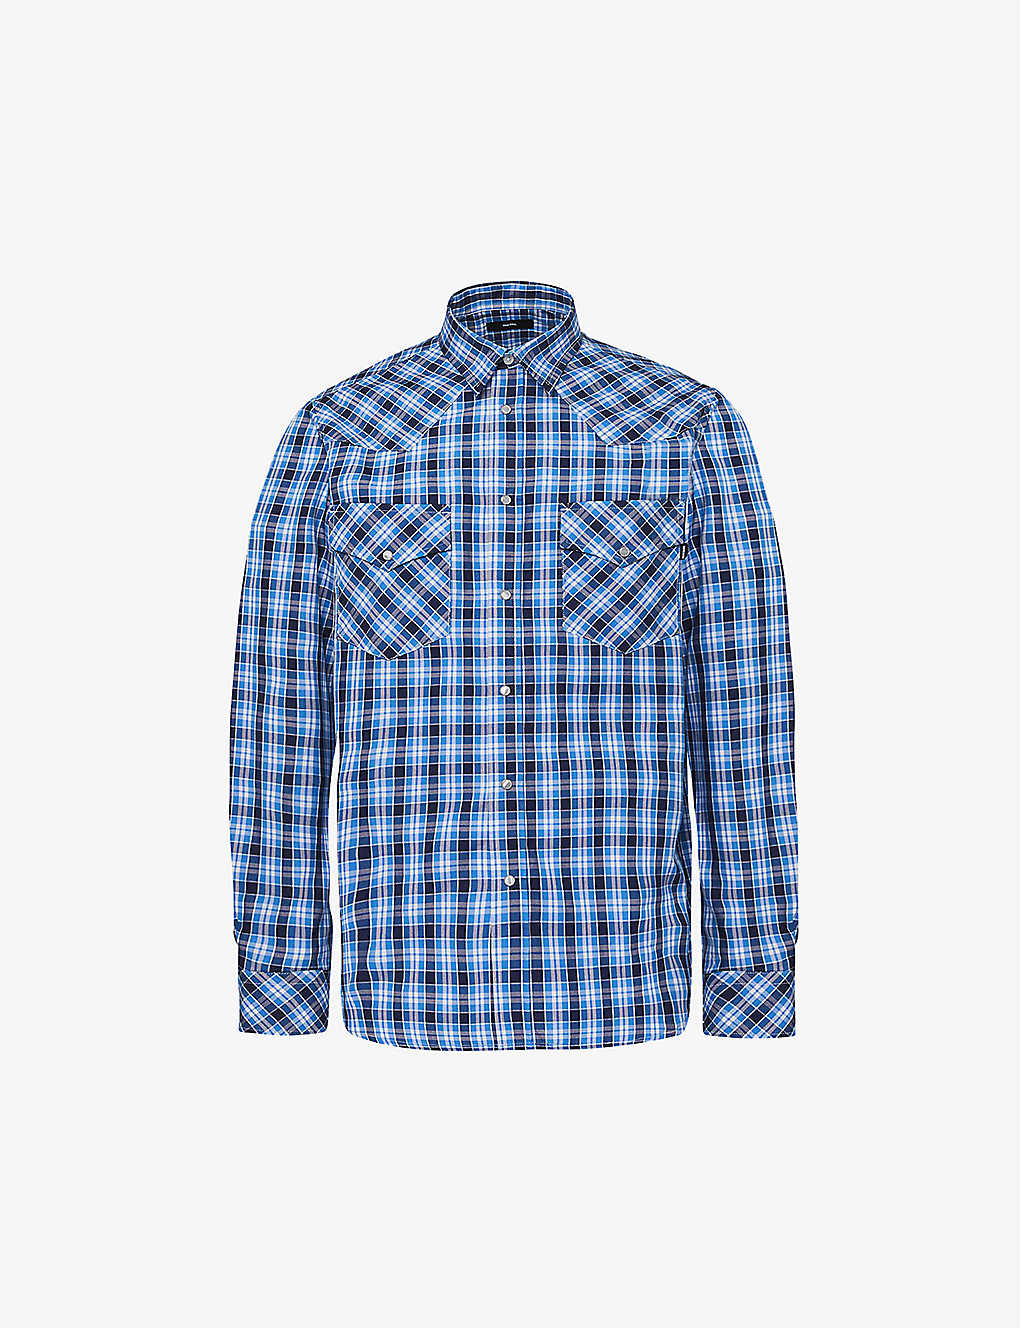 DIESEL: Checked cotton shirt